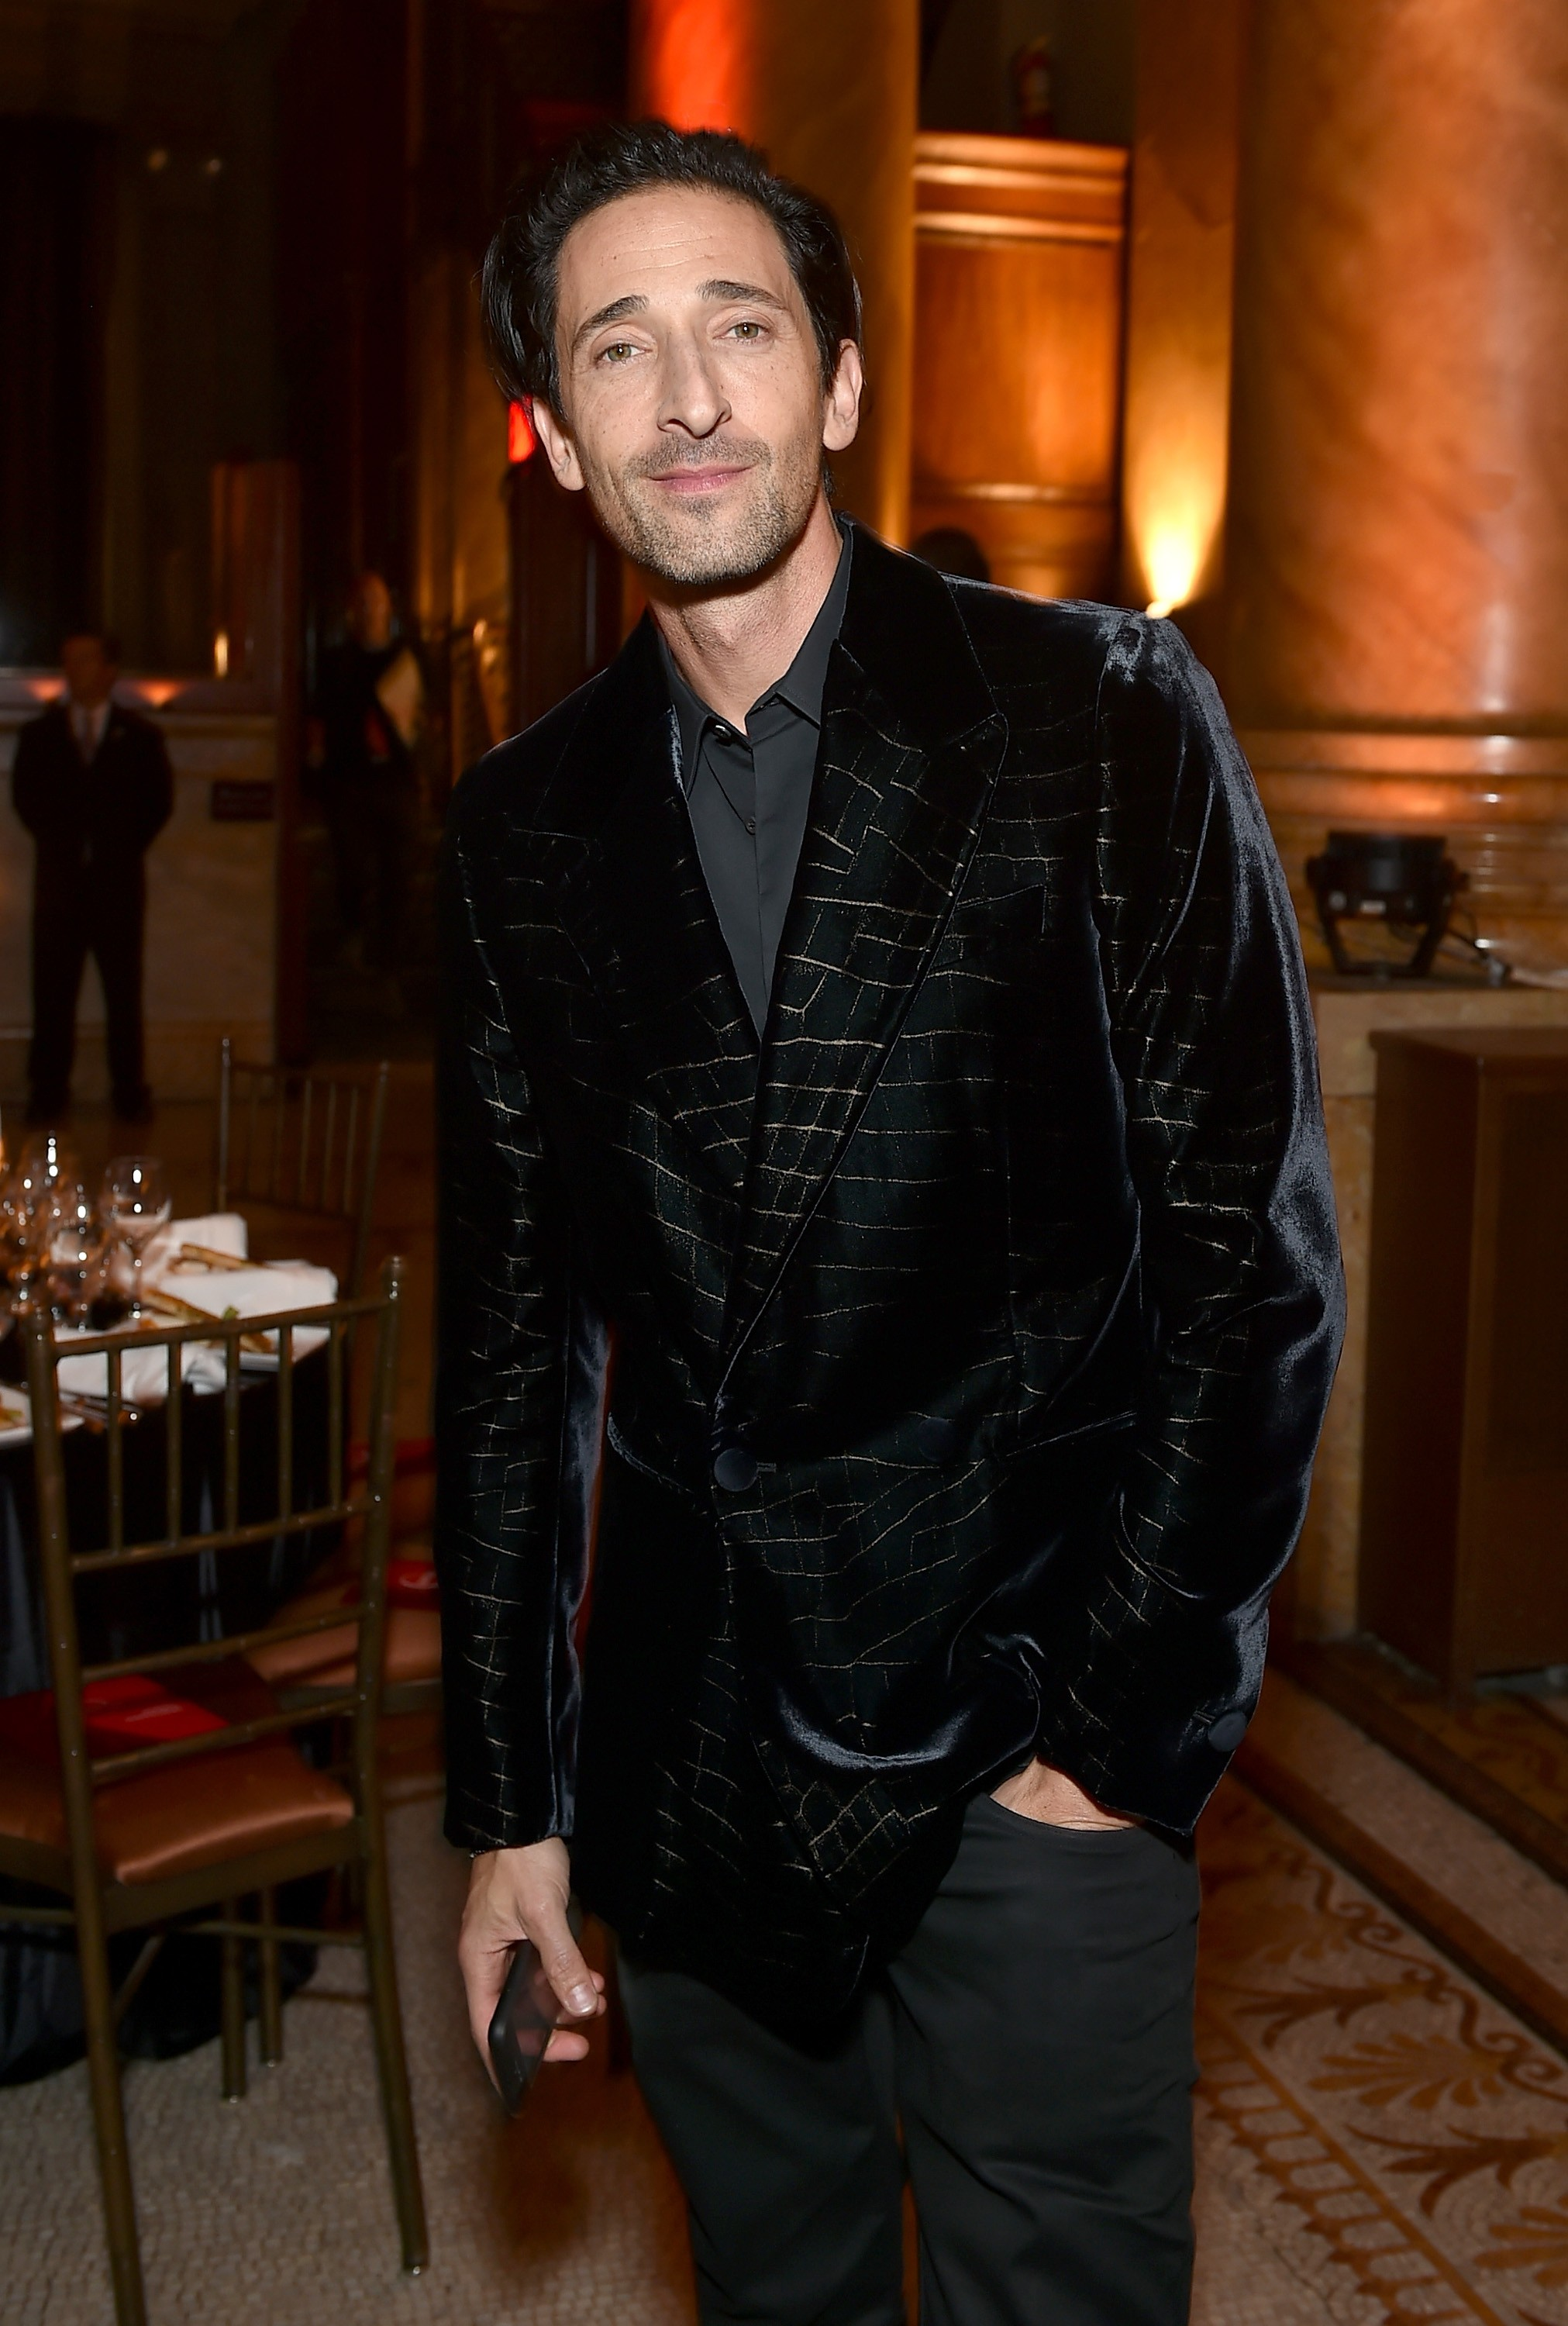 Adrien Brody no gala da amfAR em Nova York (Foto: Getty Images)